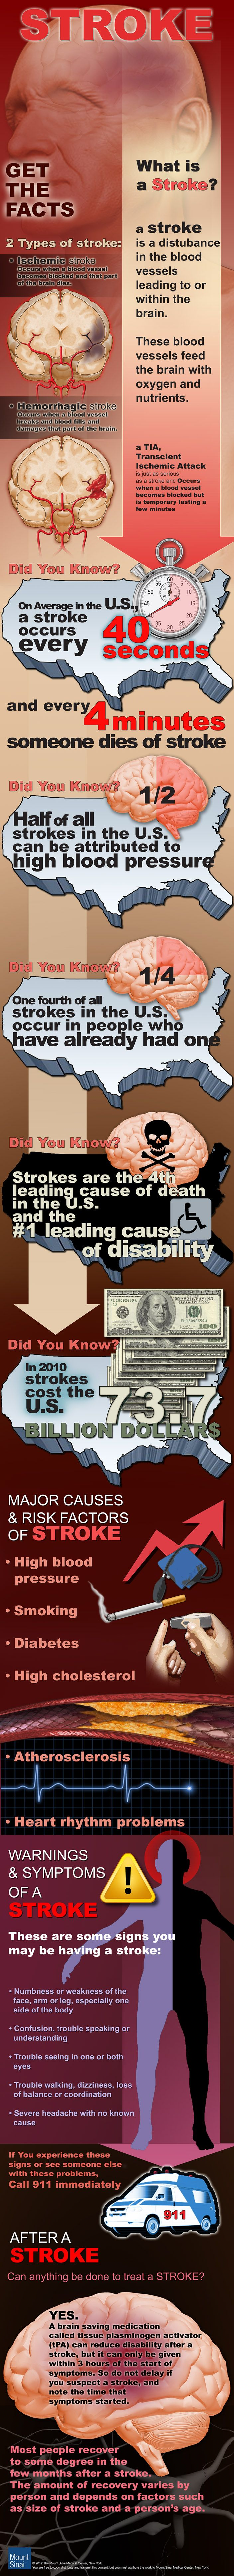 Get the Facts on Stroke #Infographic. Pinned by ottoolkit.com your source for geriatric OT resources.